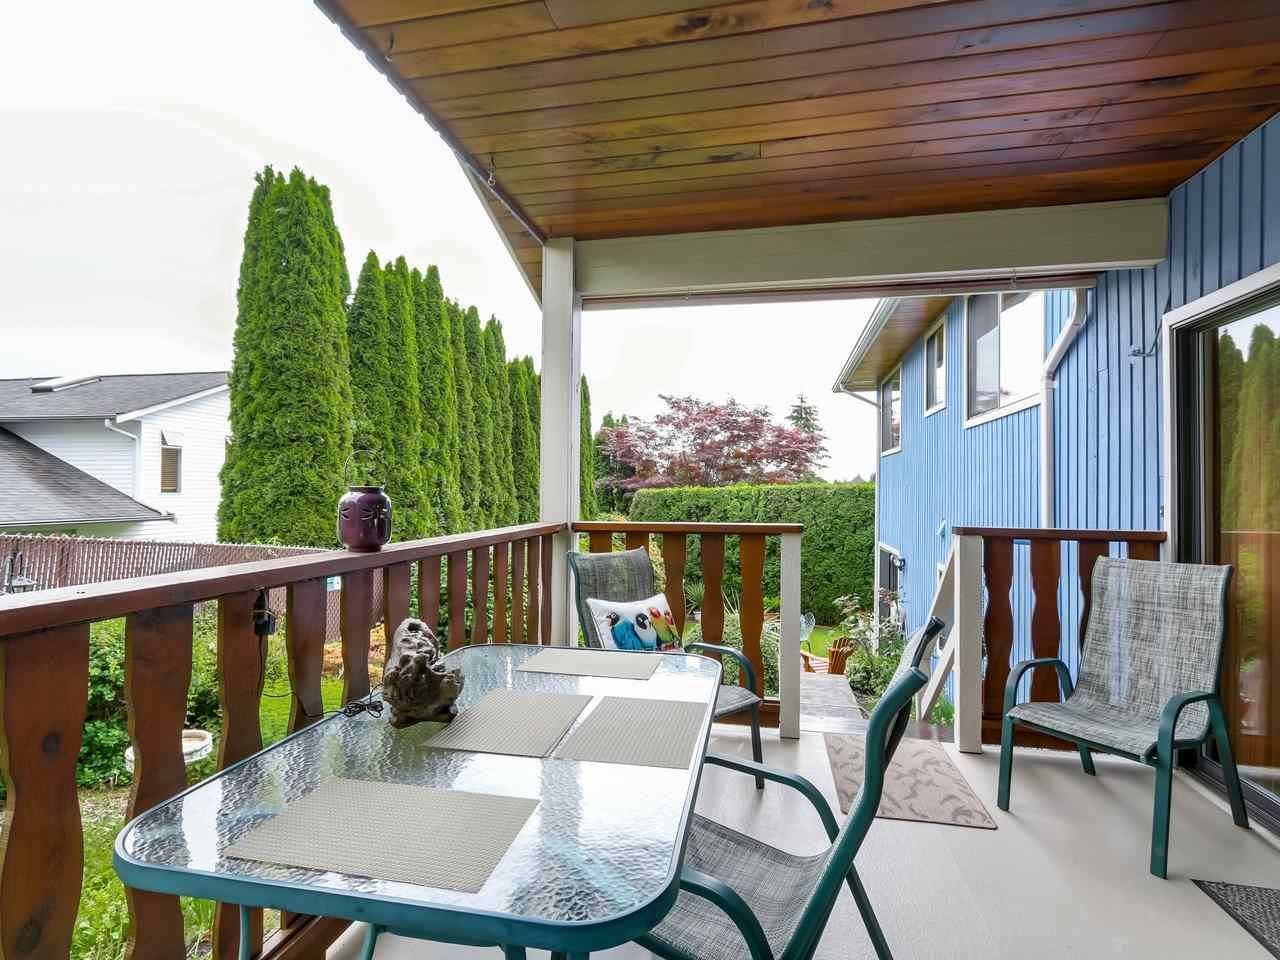 Photo 18: Photos: 4032 AYLING Street in Port Coquitlam: Oxford Heights House for sale : MLS®# R2074528